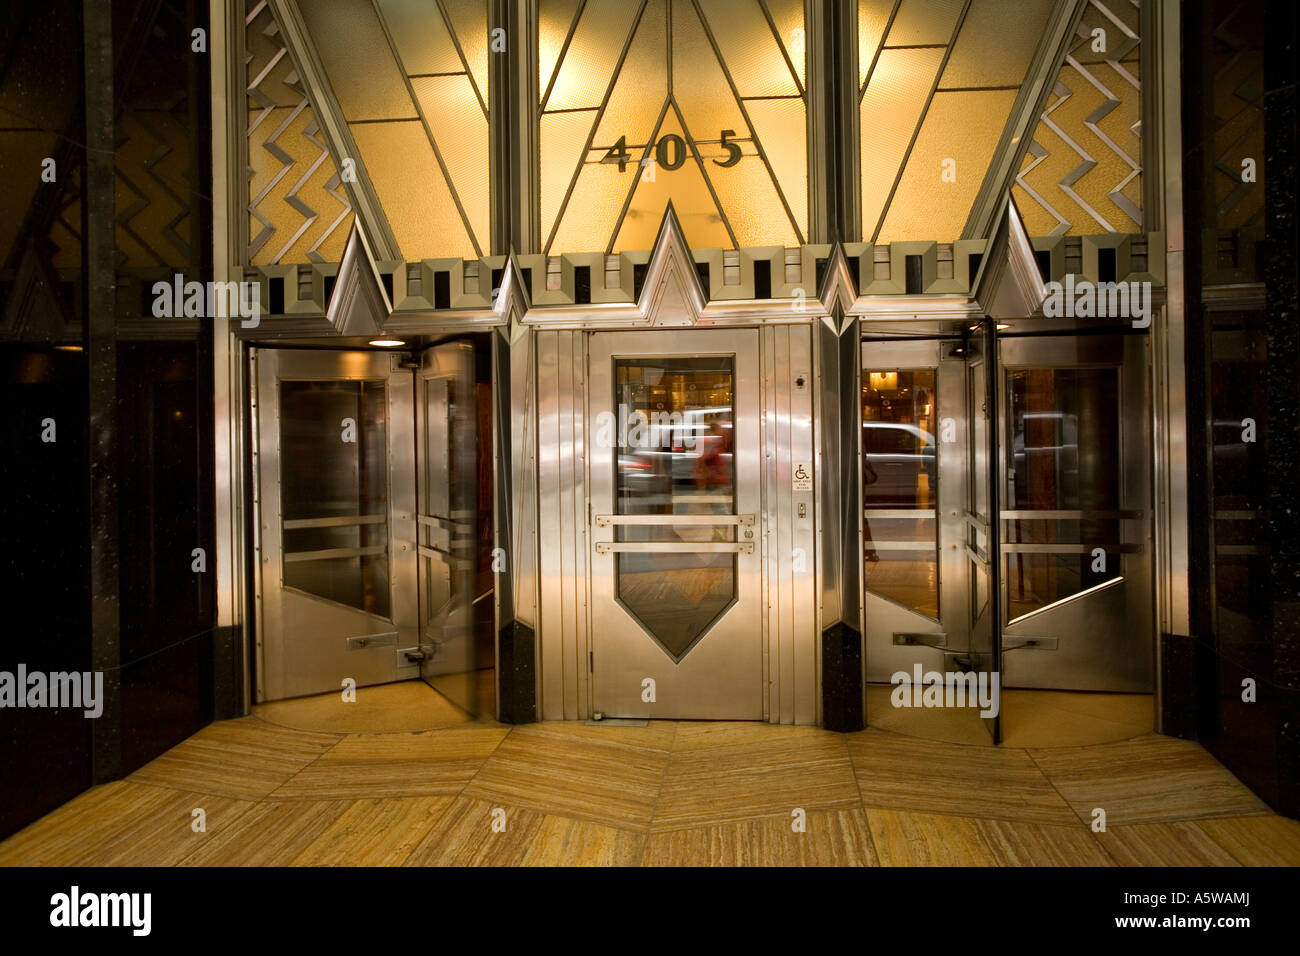 Exterior entrance to the Chrysler Building in New York City USA 2007 - Stock Image